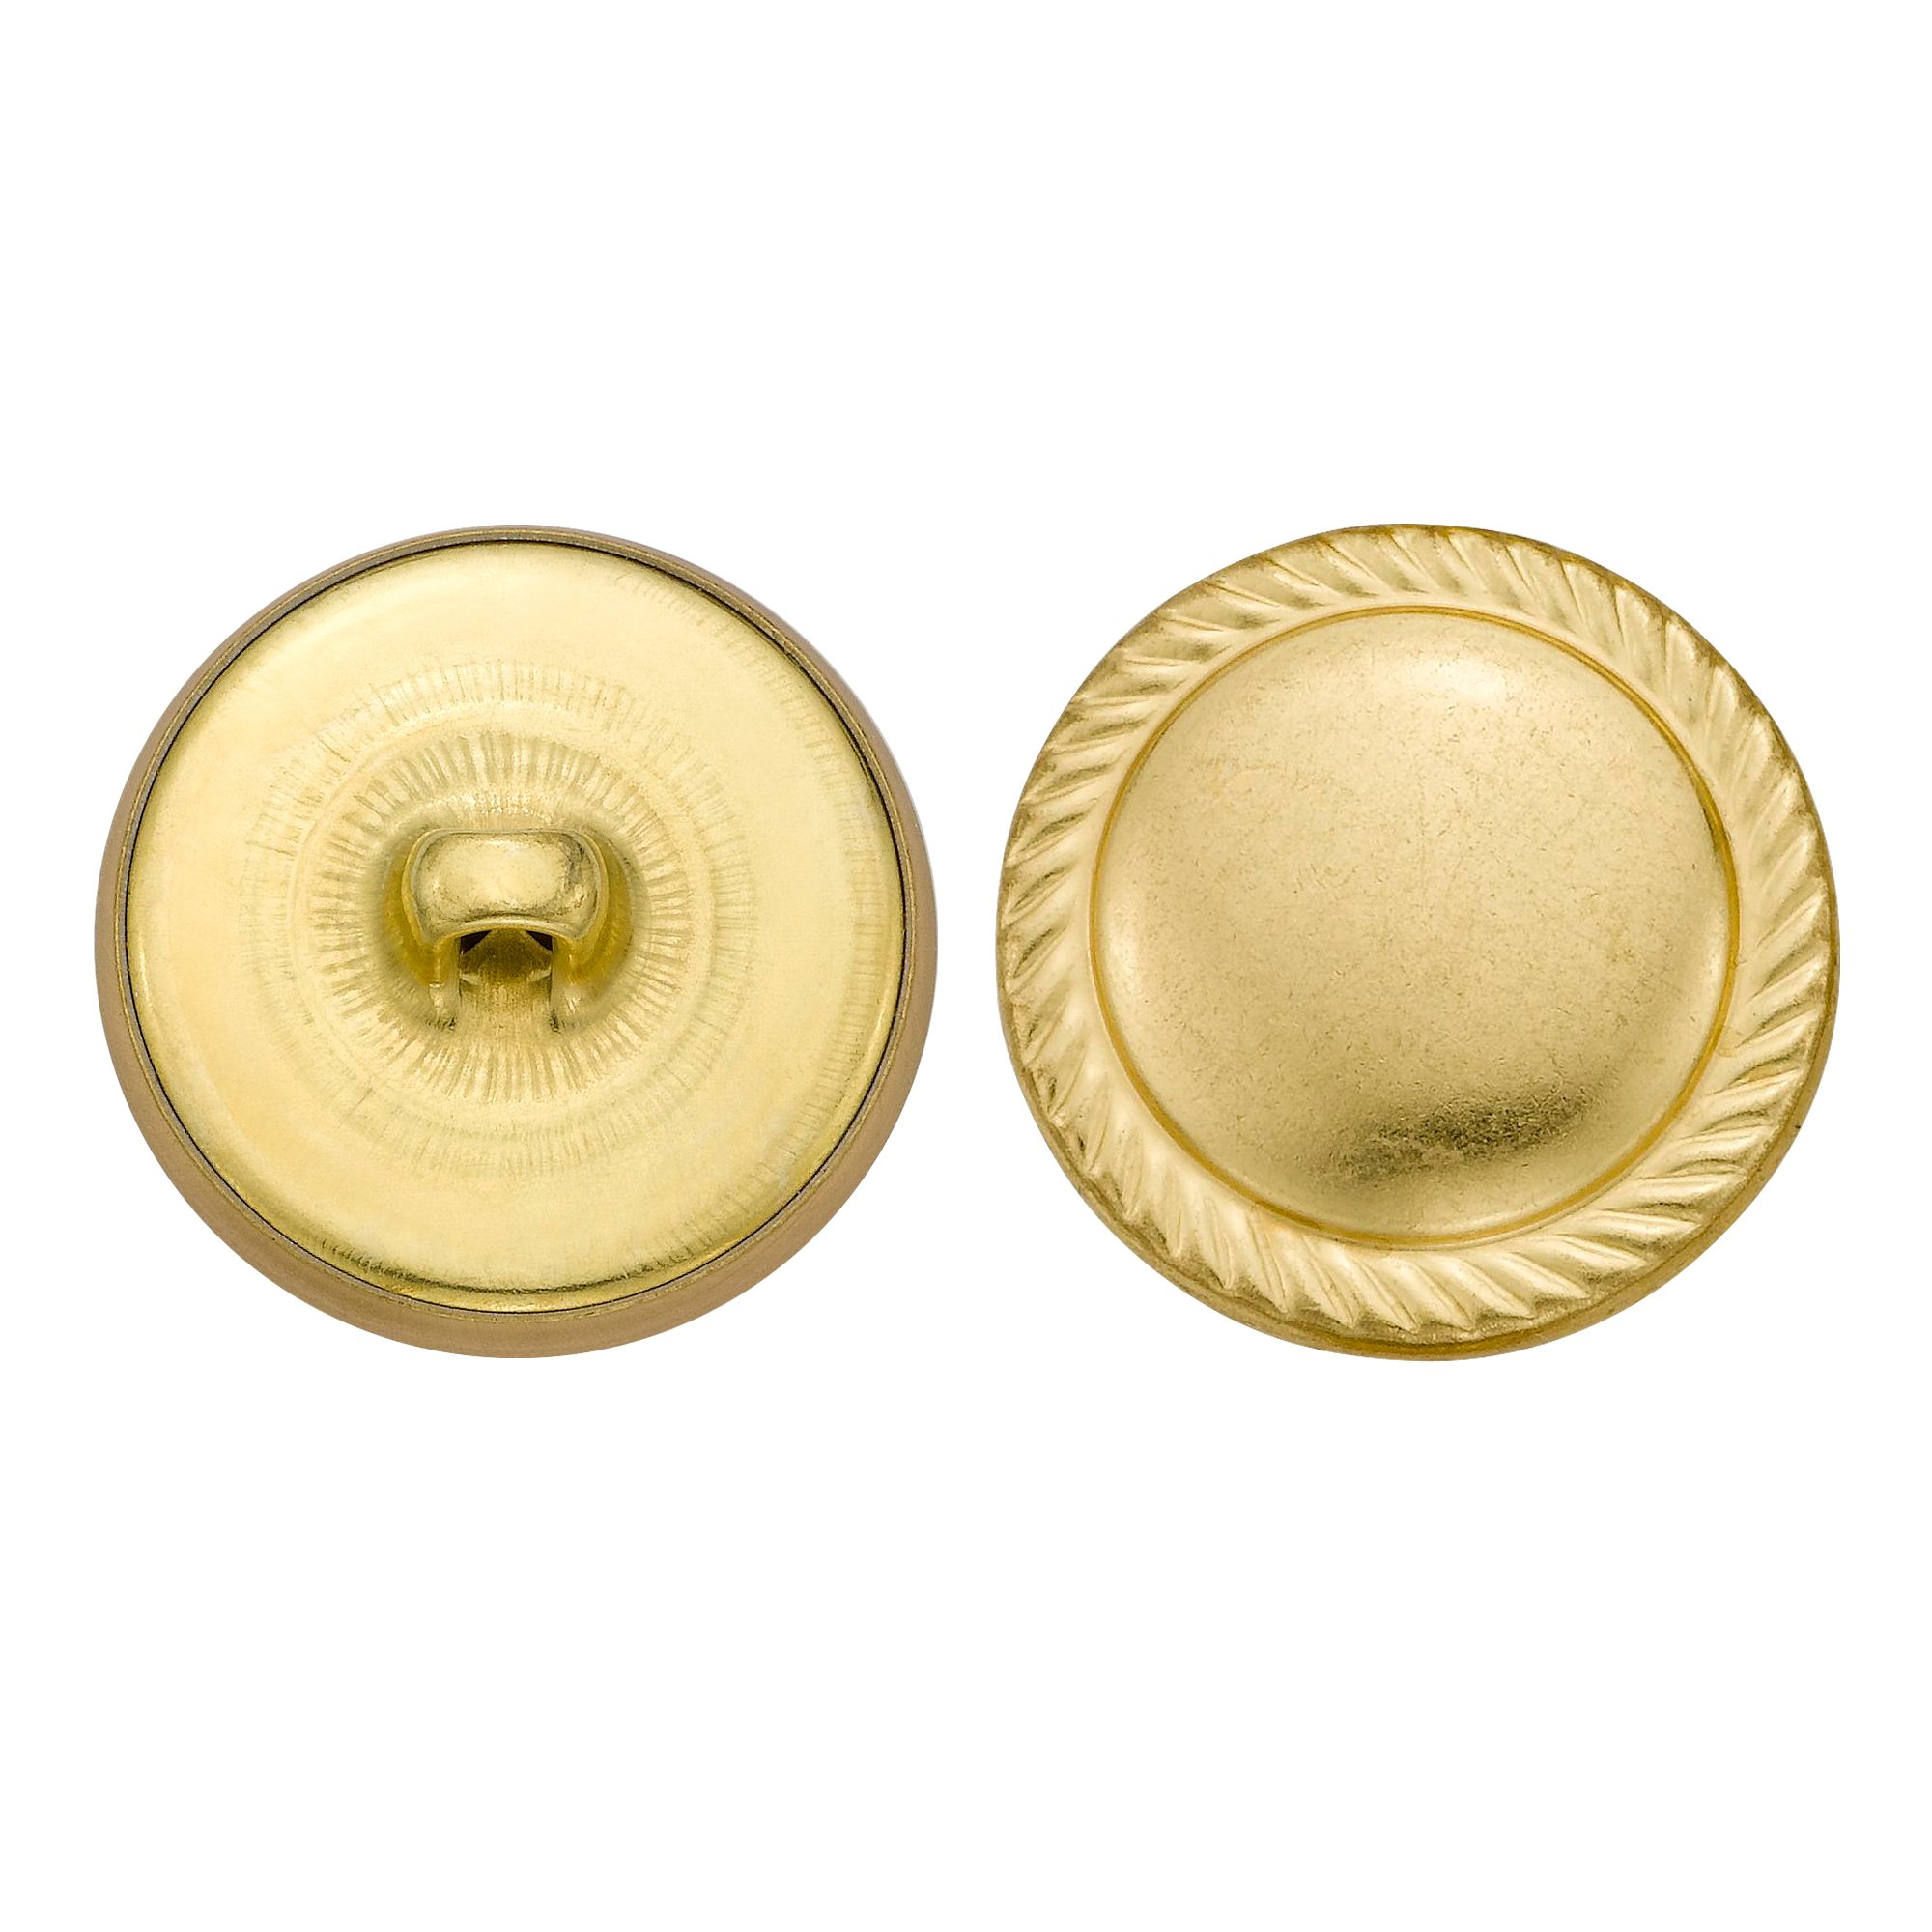 C&C Metal Products 5351 Rope Edge Dome Metal Button, Size 36 Ligne, Gold, 36-Pack